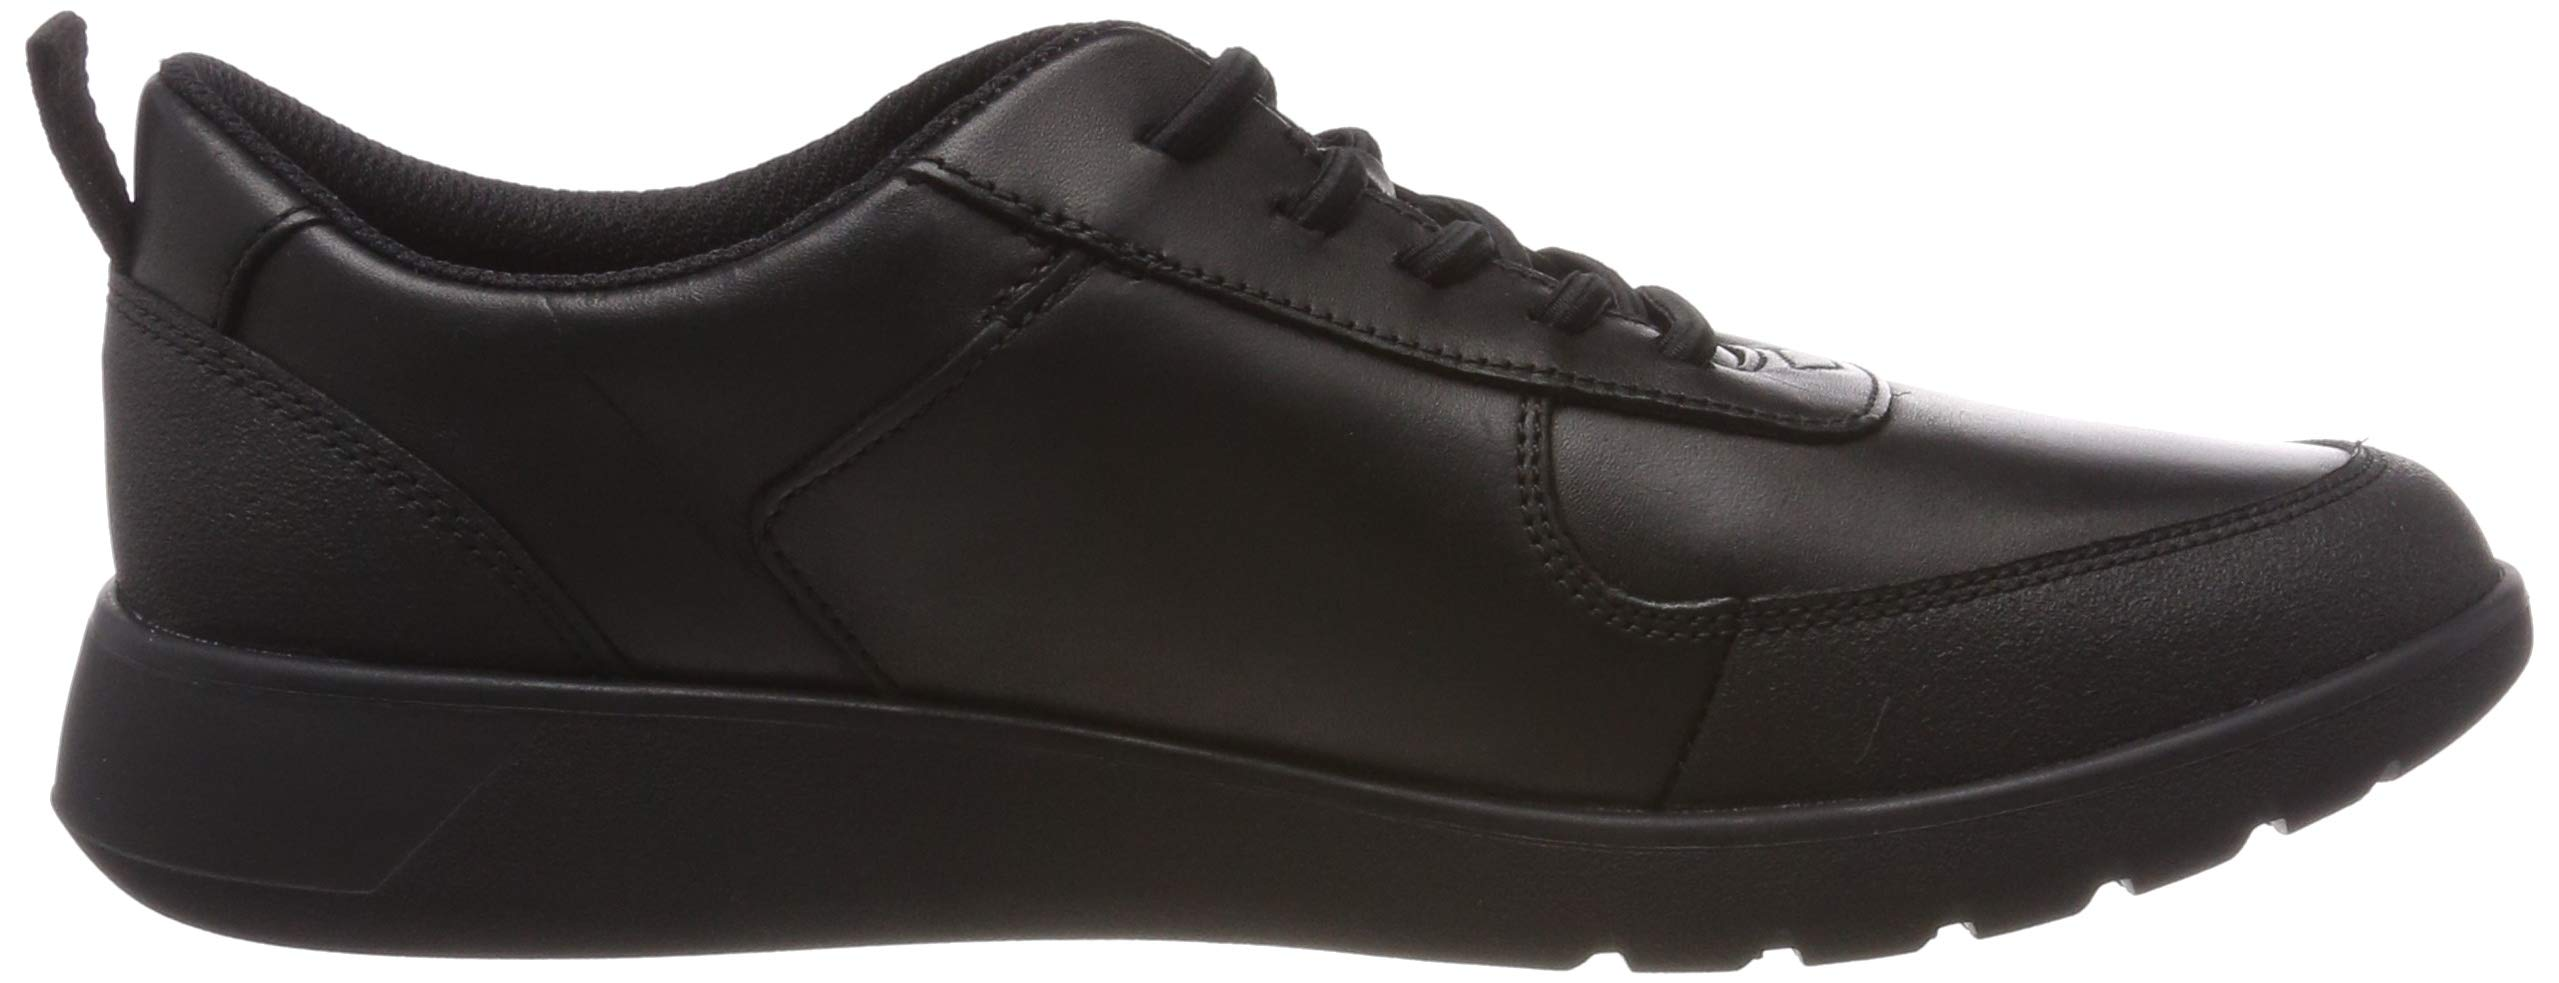 CLARKS Boys' Scape Street Y Brogues, (Black Leather-), 3 UK by CLARKS (Image #6)